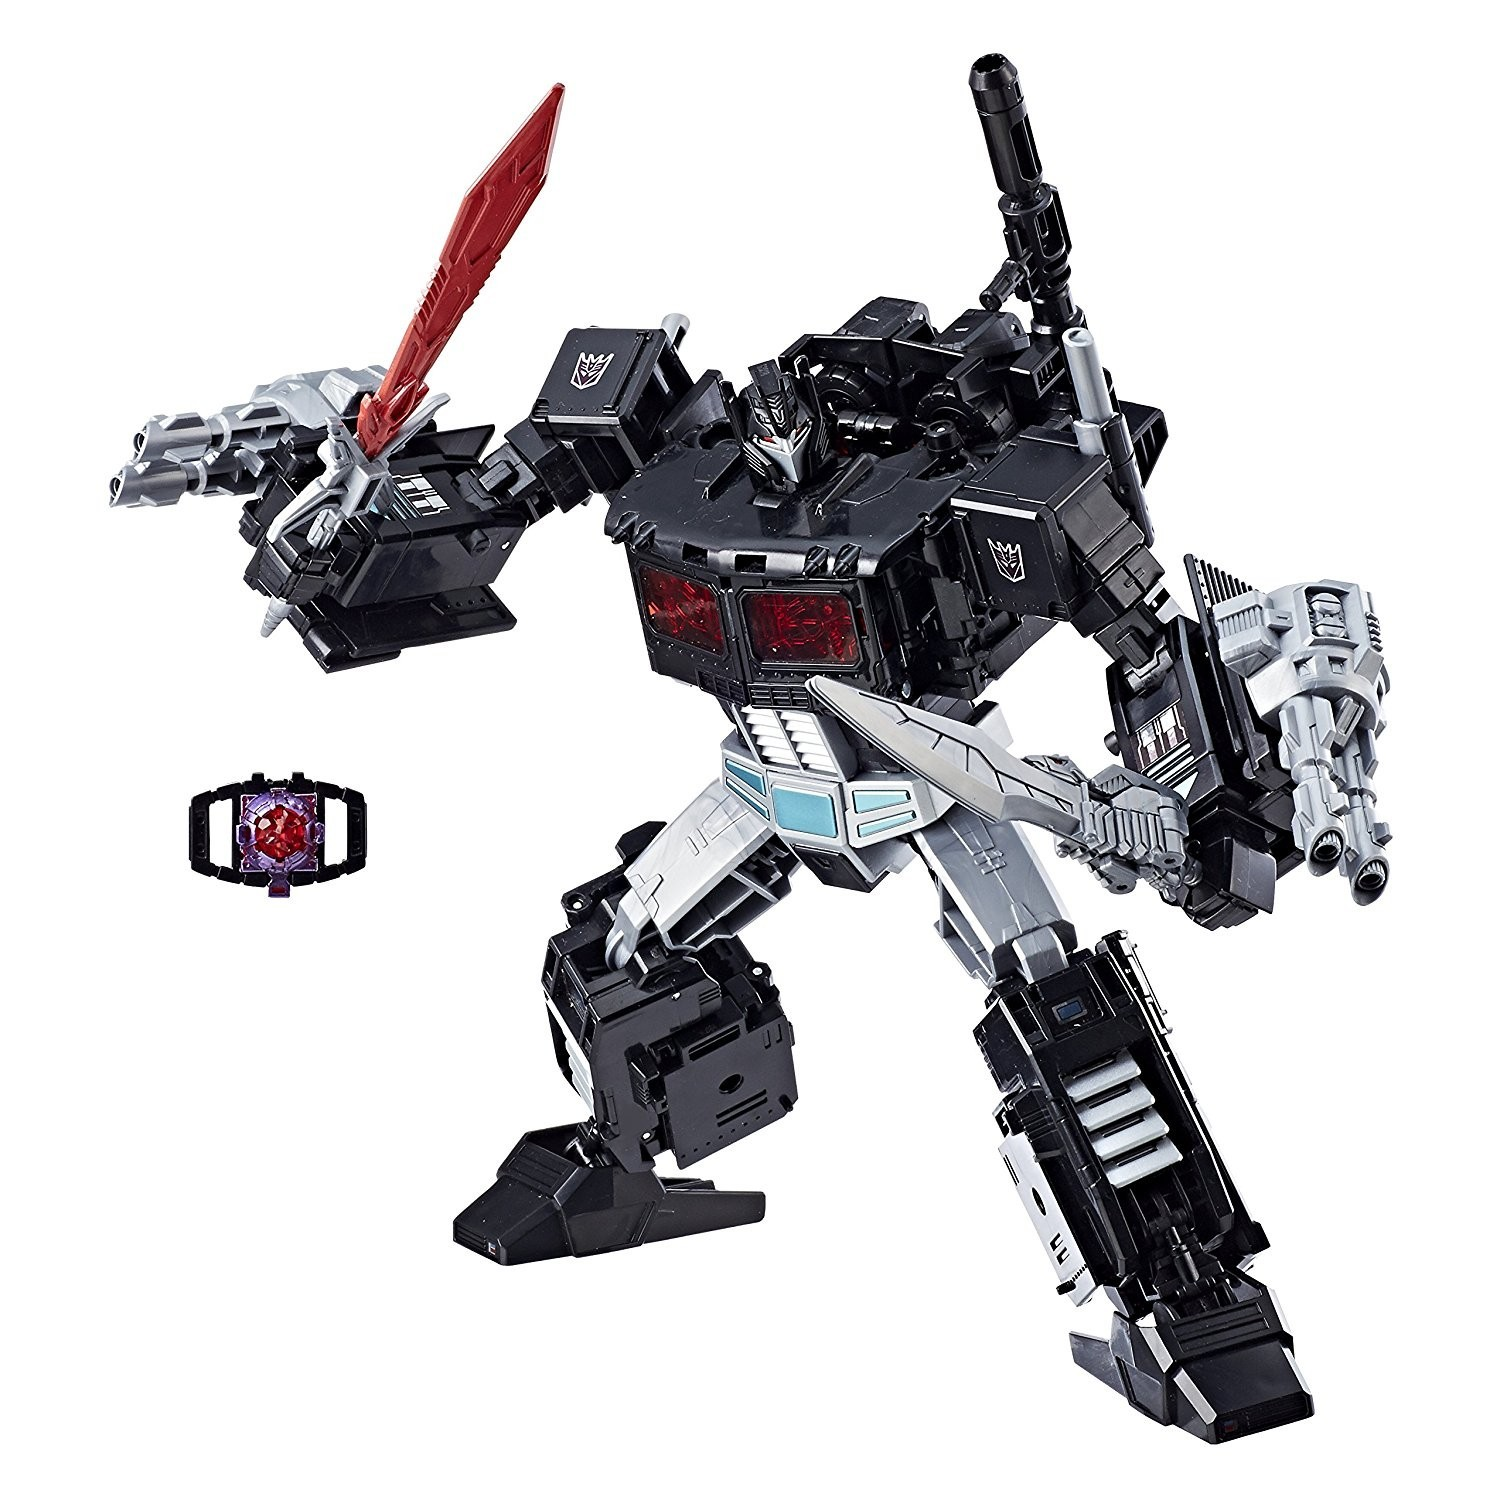 Transformers Power Of The Primes Nemesis Prime Confirmed To Be